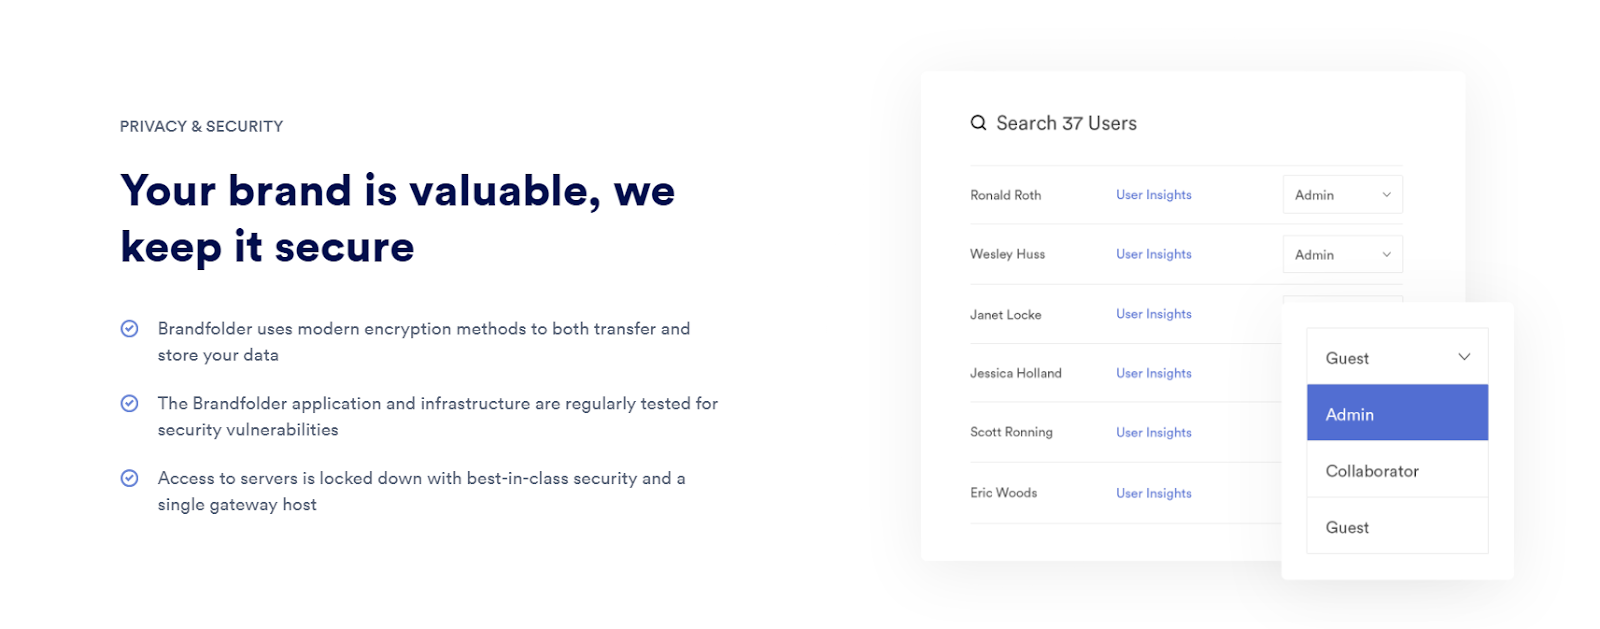 Overview of Brandfolder asset privacy and security